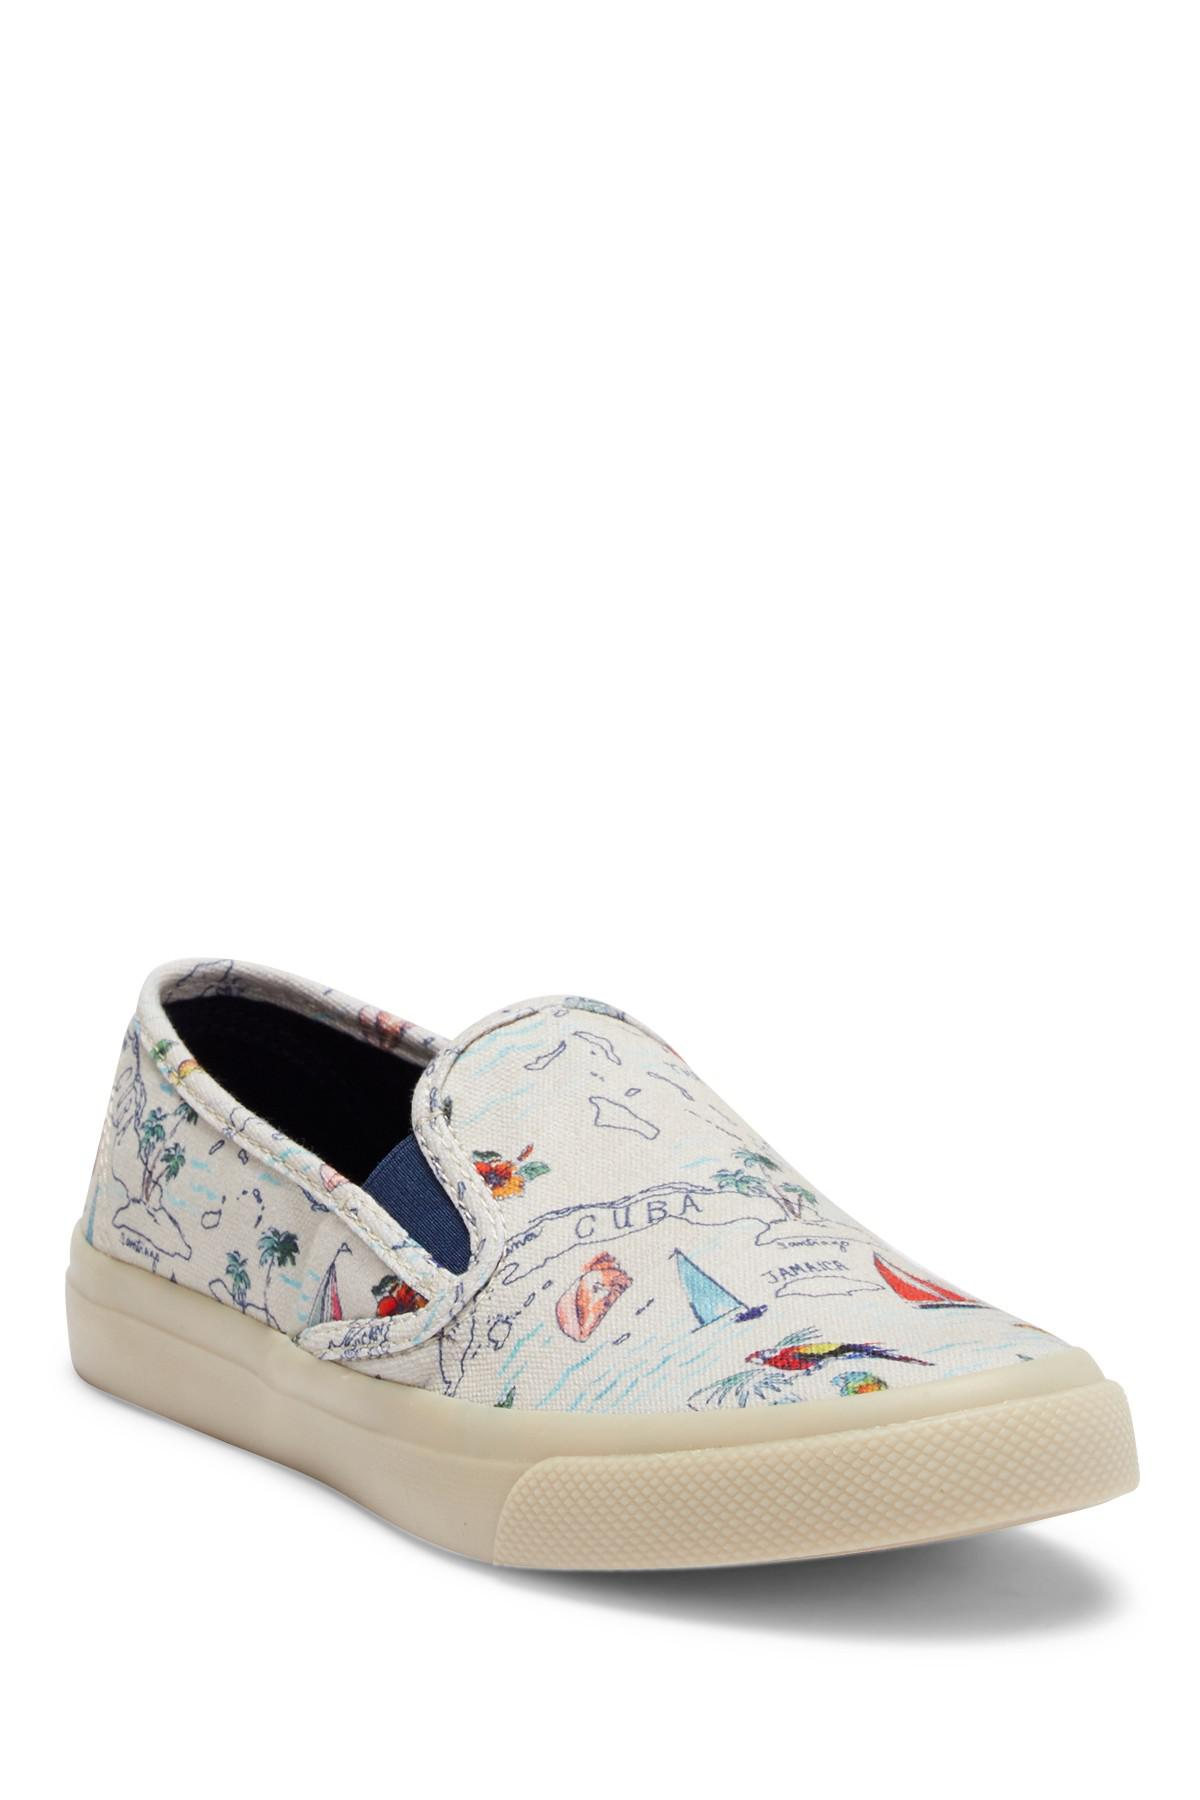 Sperry Top-Sider Canvas Seaside Map